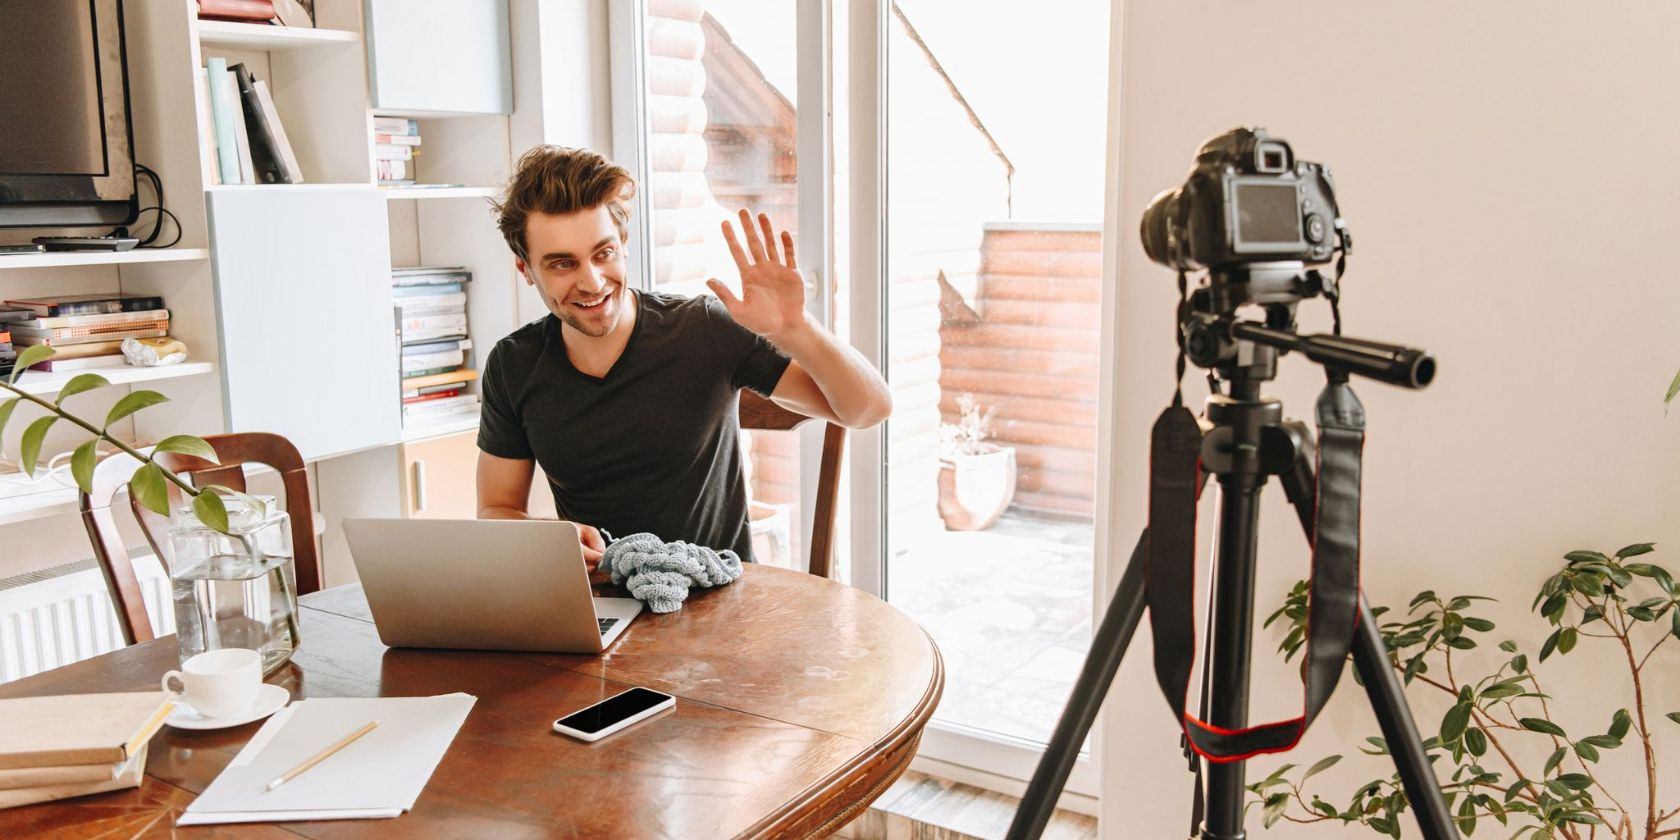 9 Ways to Make Your Instagram Videos More Engaging